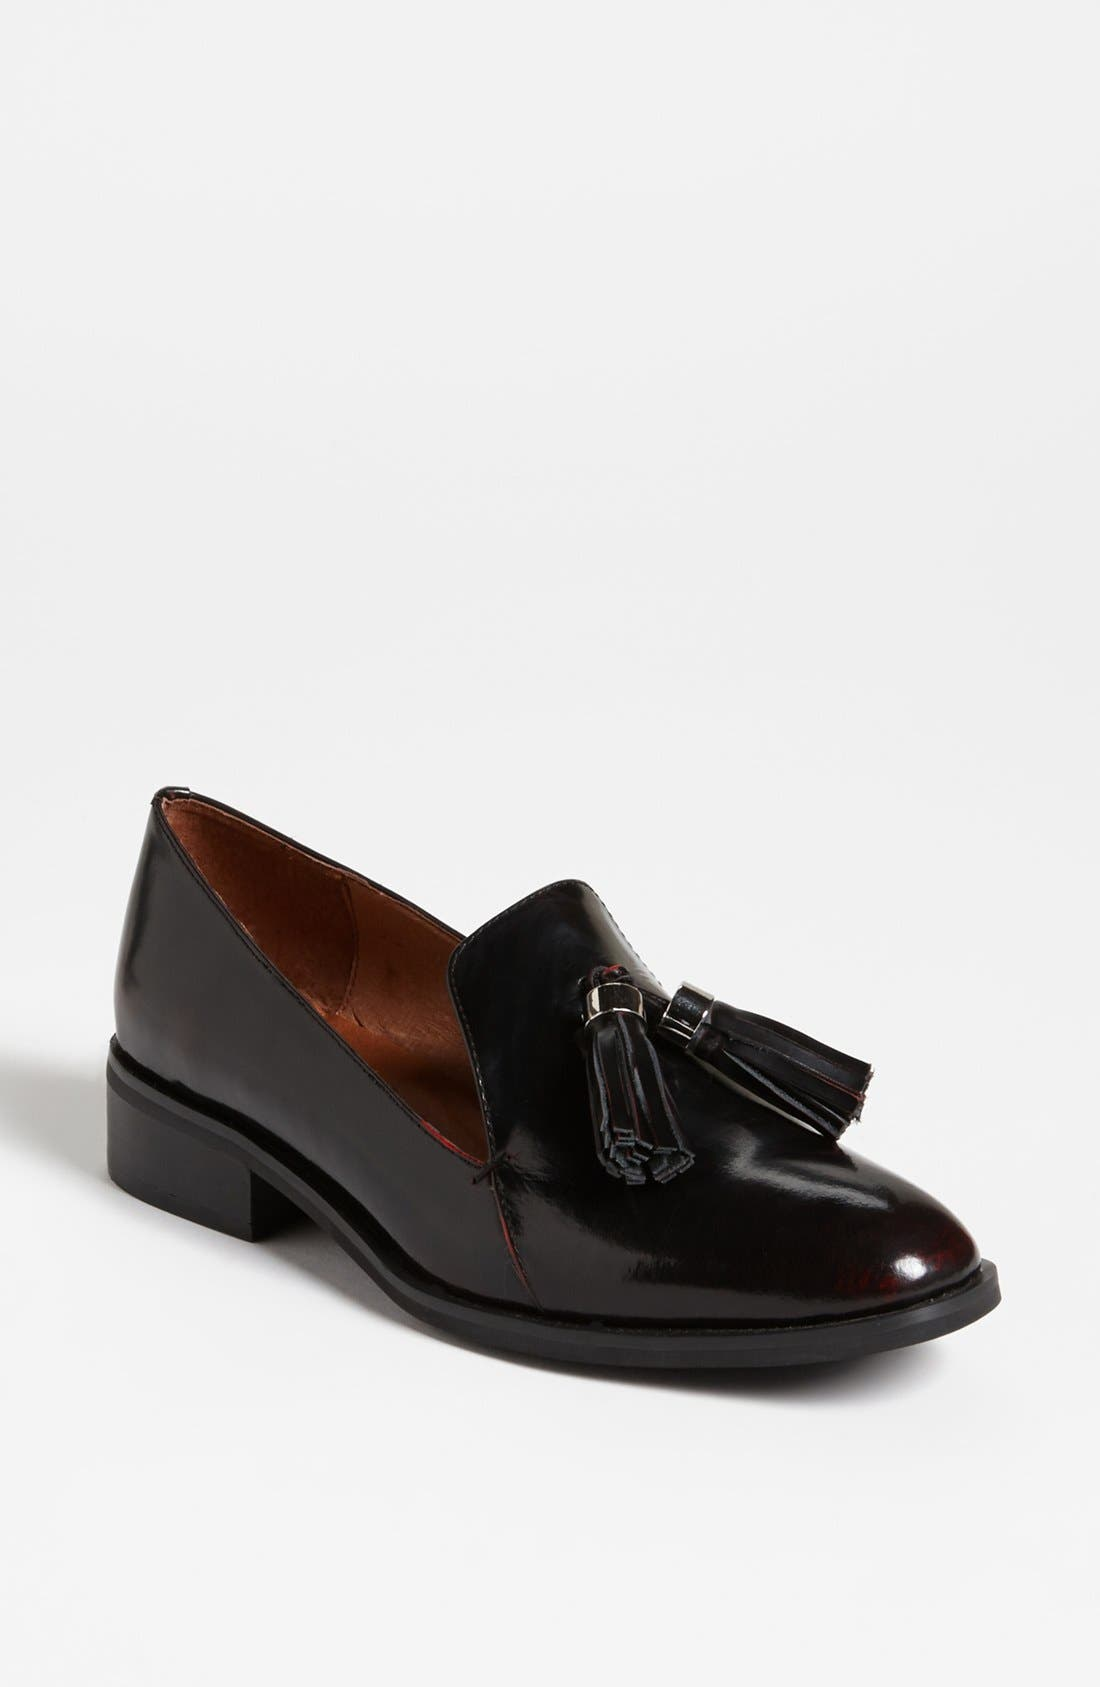 Main Image - Jeffrey Campbell 'Lawford' Loafer